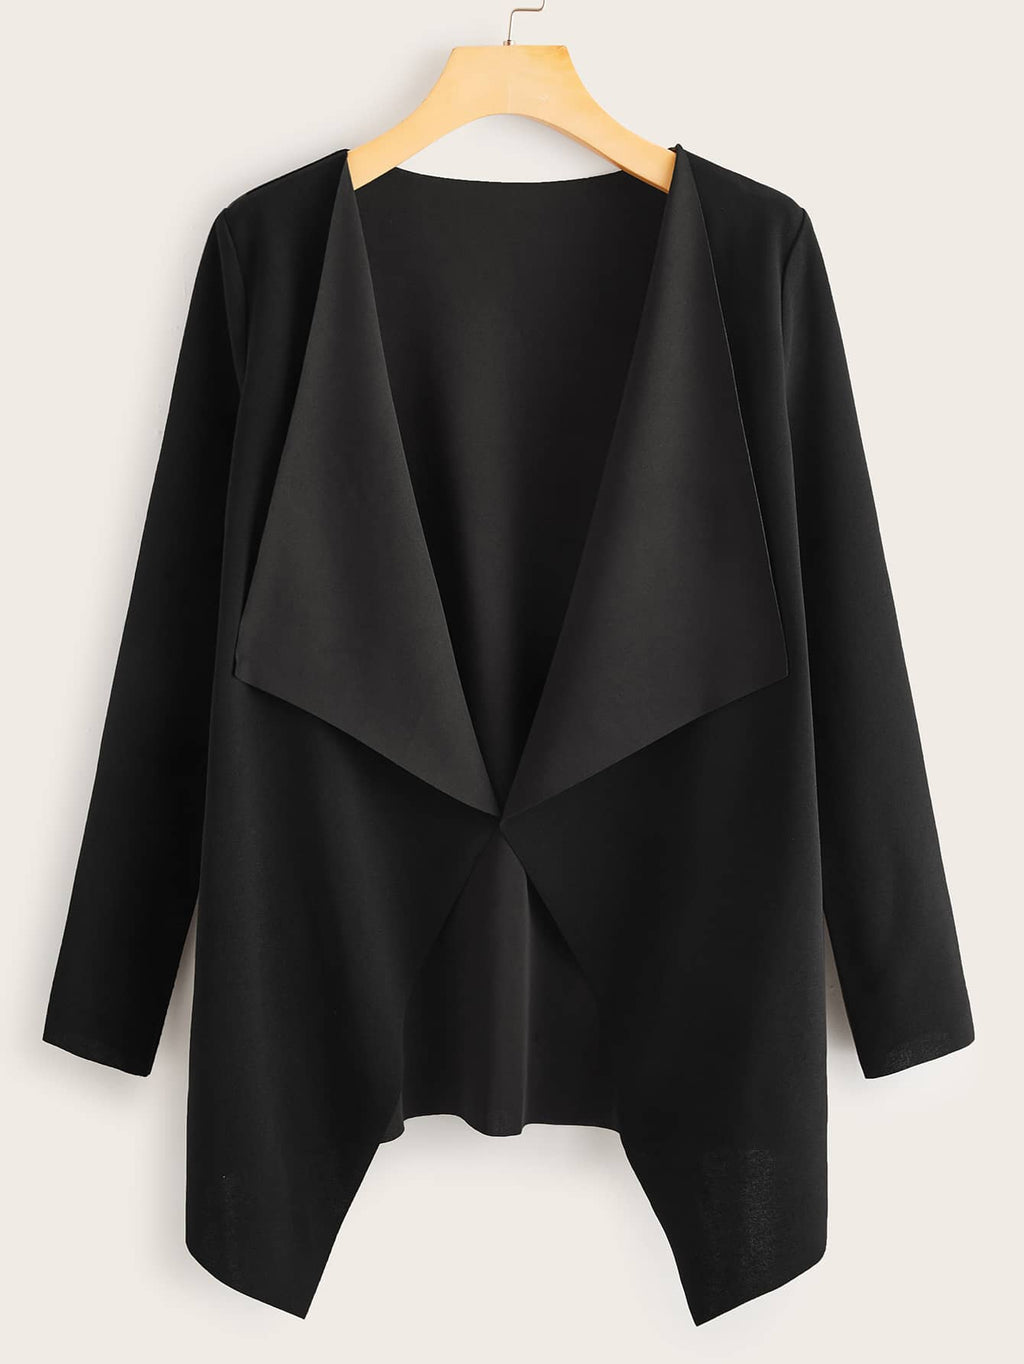 Draped Collar Open Front Coat - INS | Online Fashion Free Shipping Clothing, Dresses, Tops, Shoes